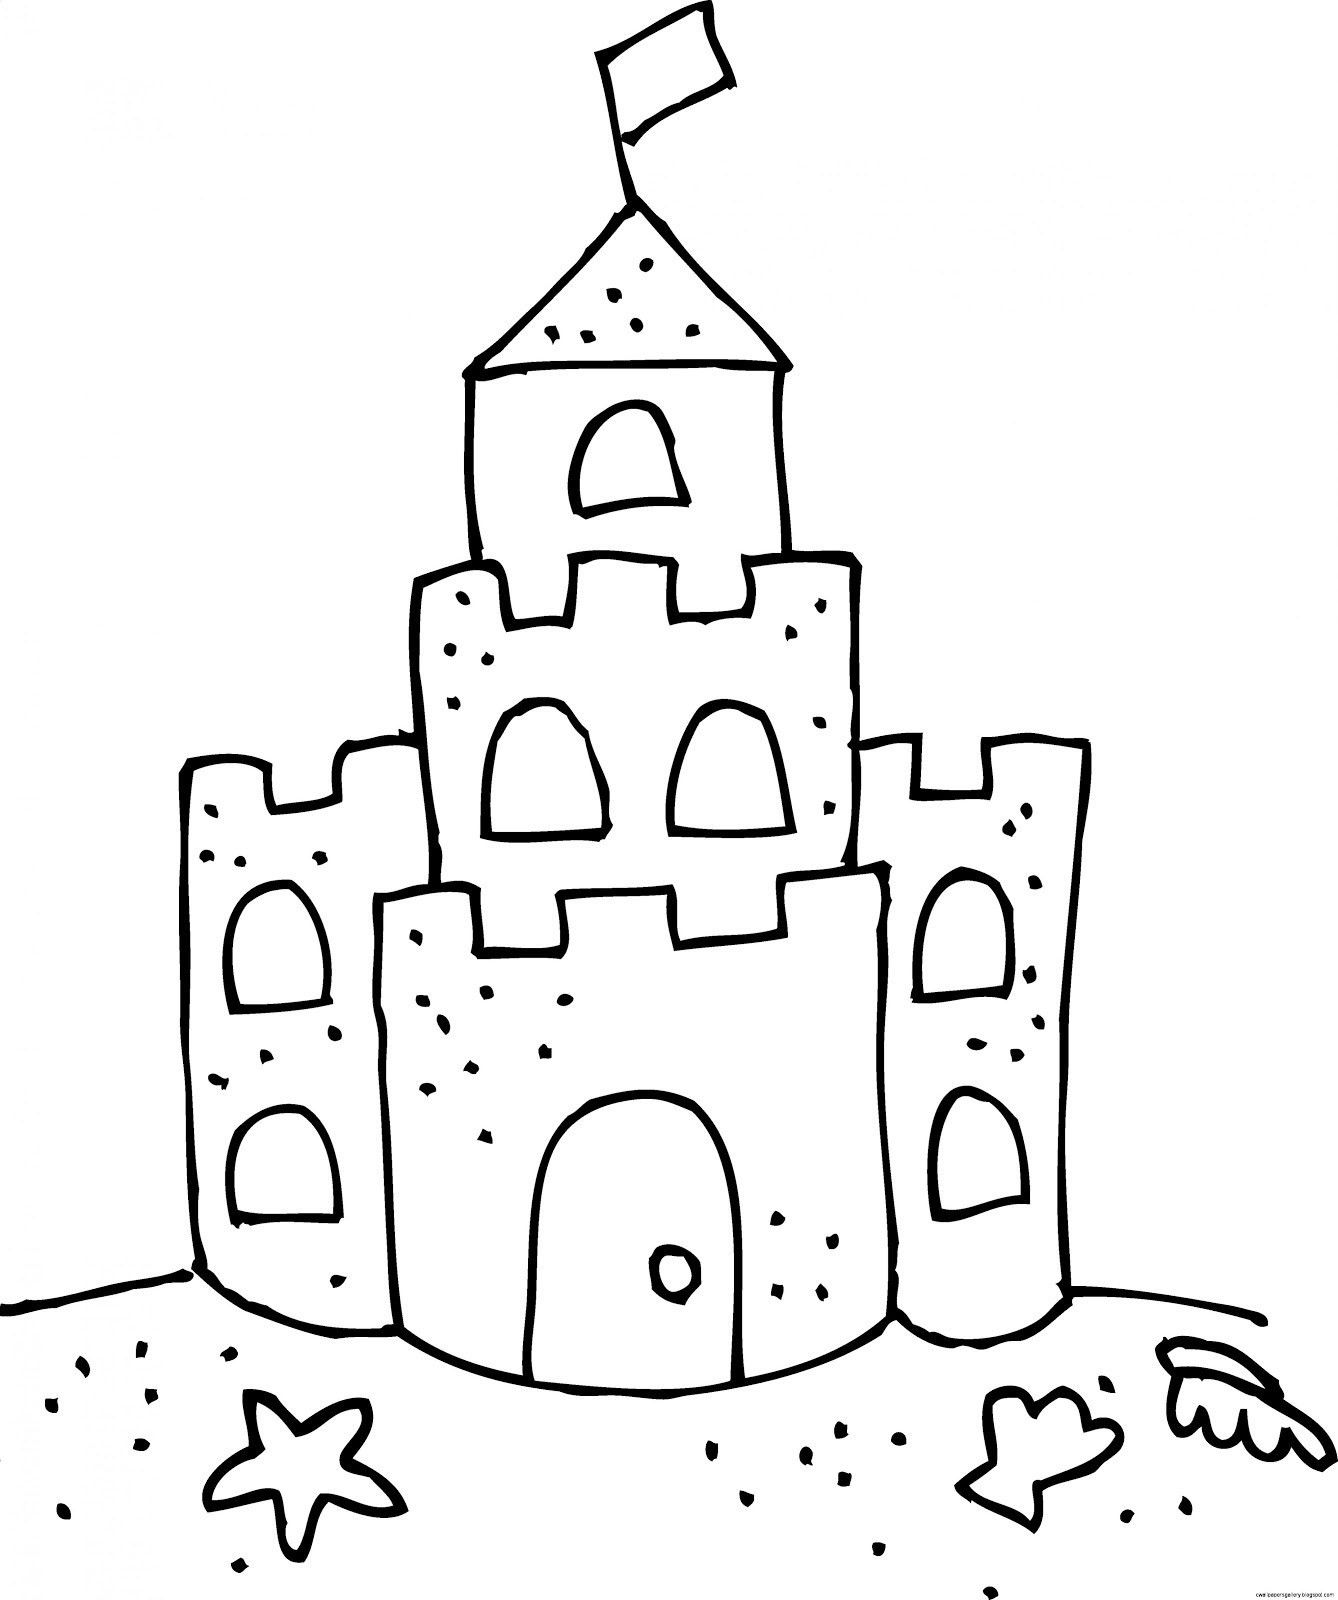 printable sand castle coloring page sand castle with bucket and shovel coloring page sand coloring printable page castle